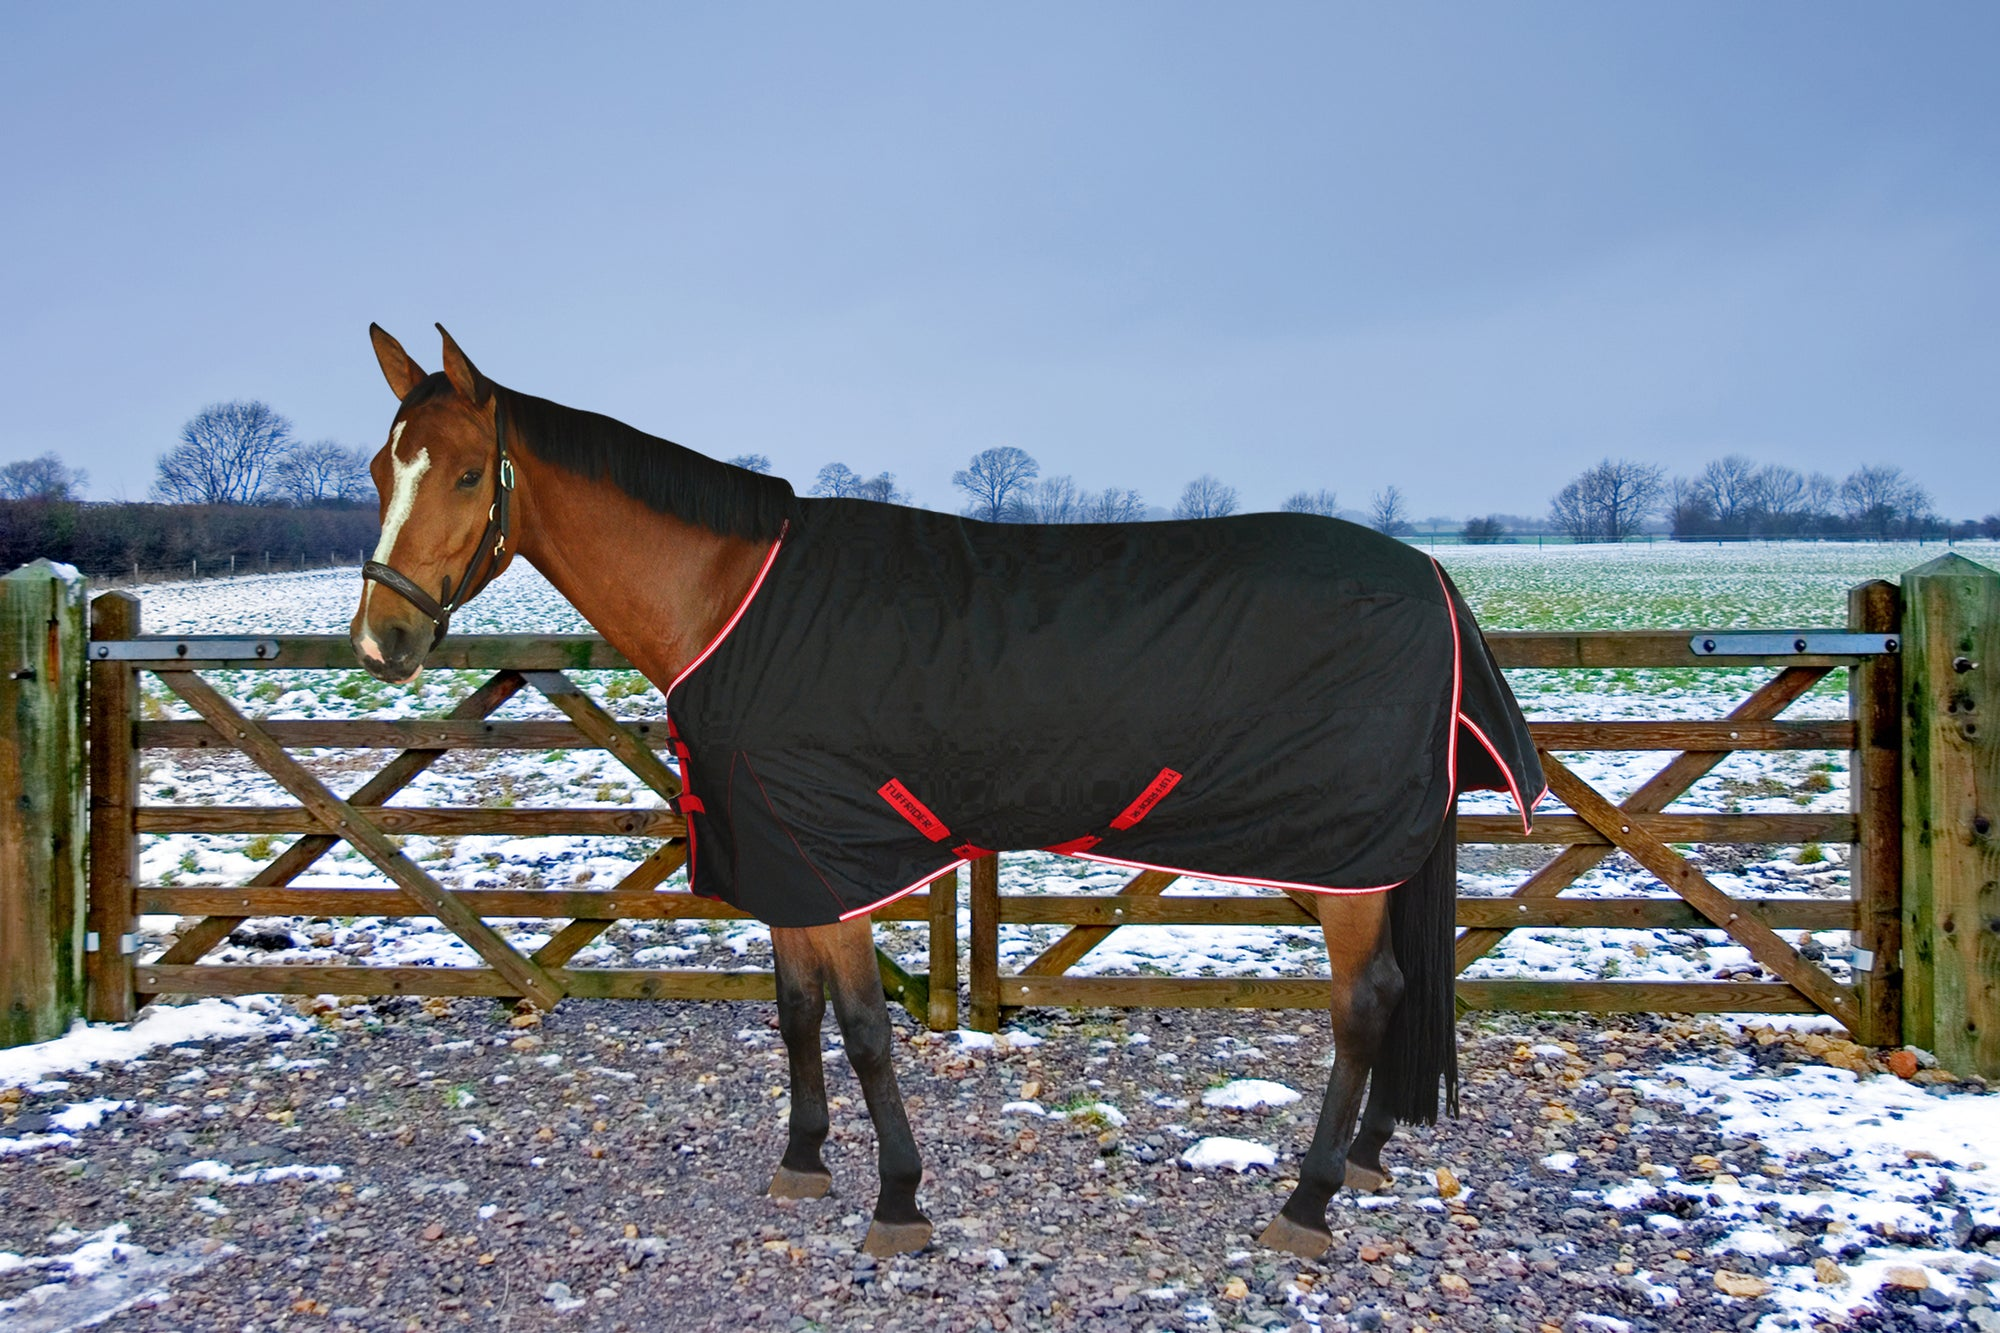 TuffRider Optimum 1680D Outer Armour Medium Weight  w/ Thermo Manager Lining Standard Neck  Turnout Blanket - Breeches.com